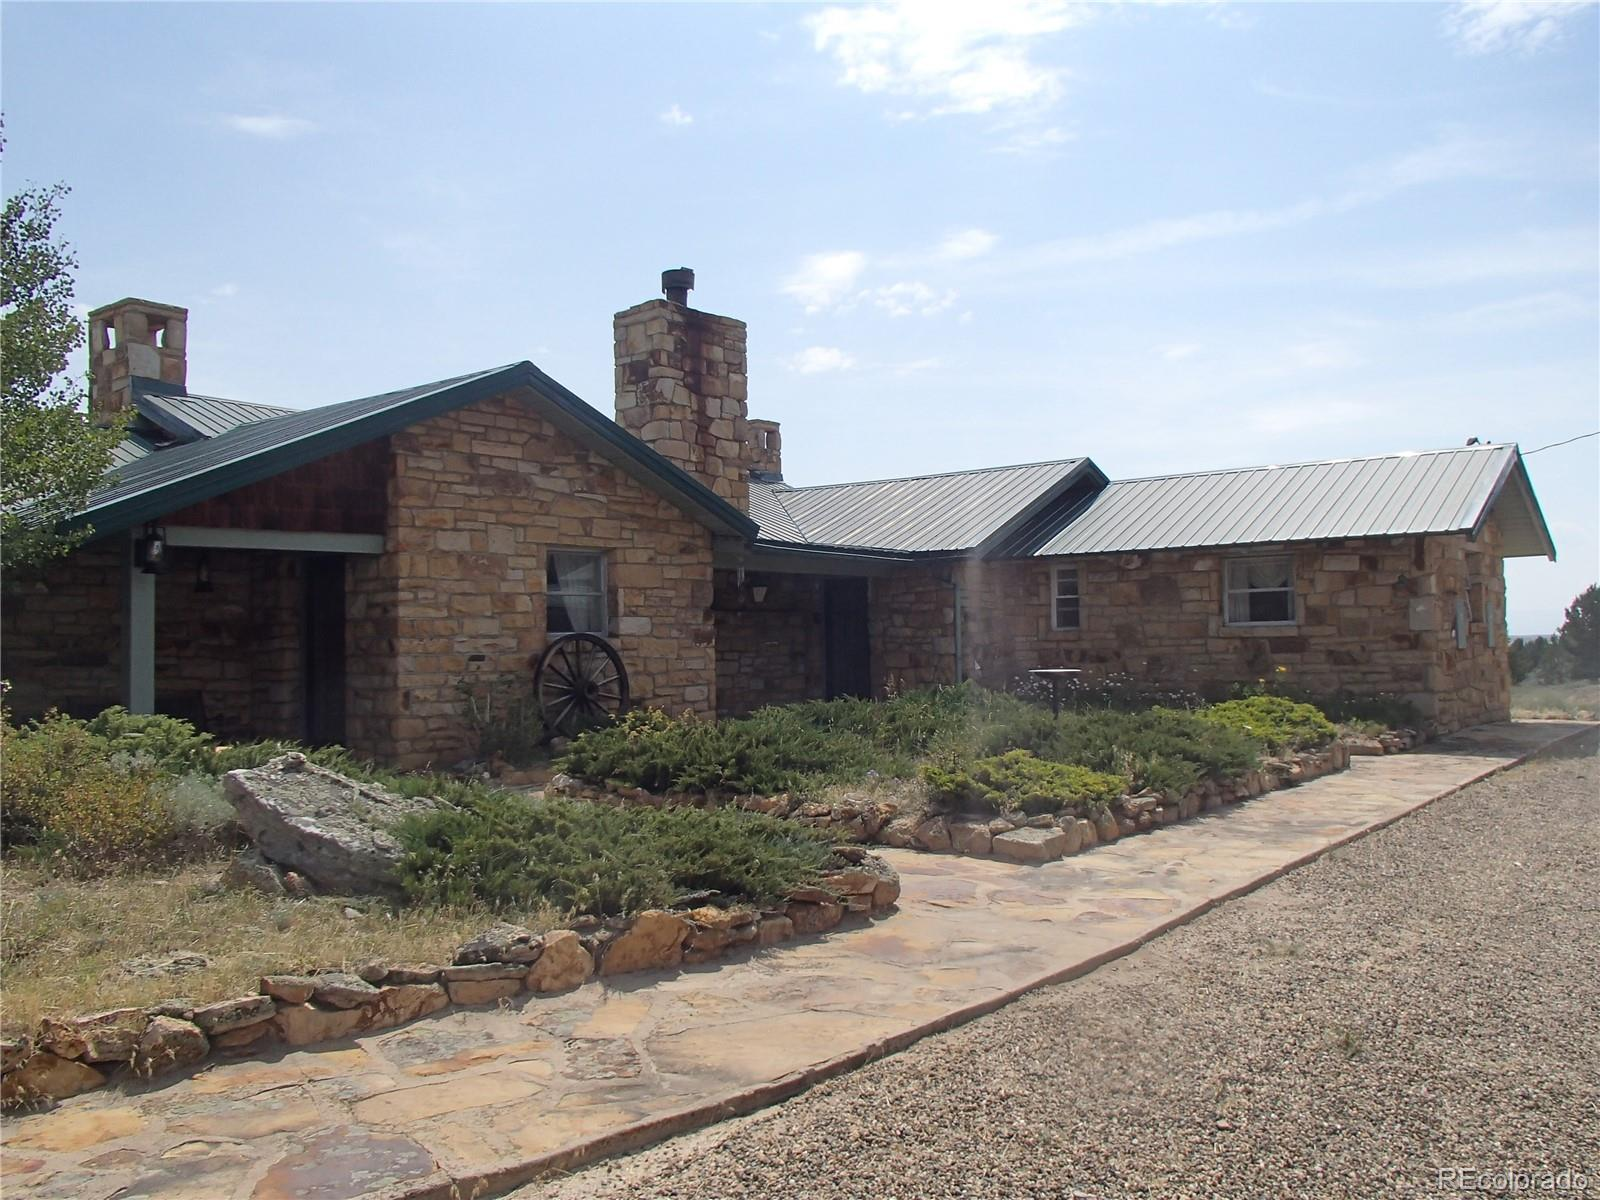 2631 Jackson County Rd 7A, Walden, CO 80480 - Walden, CO real estate listing